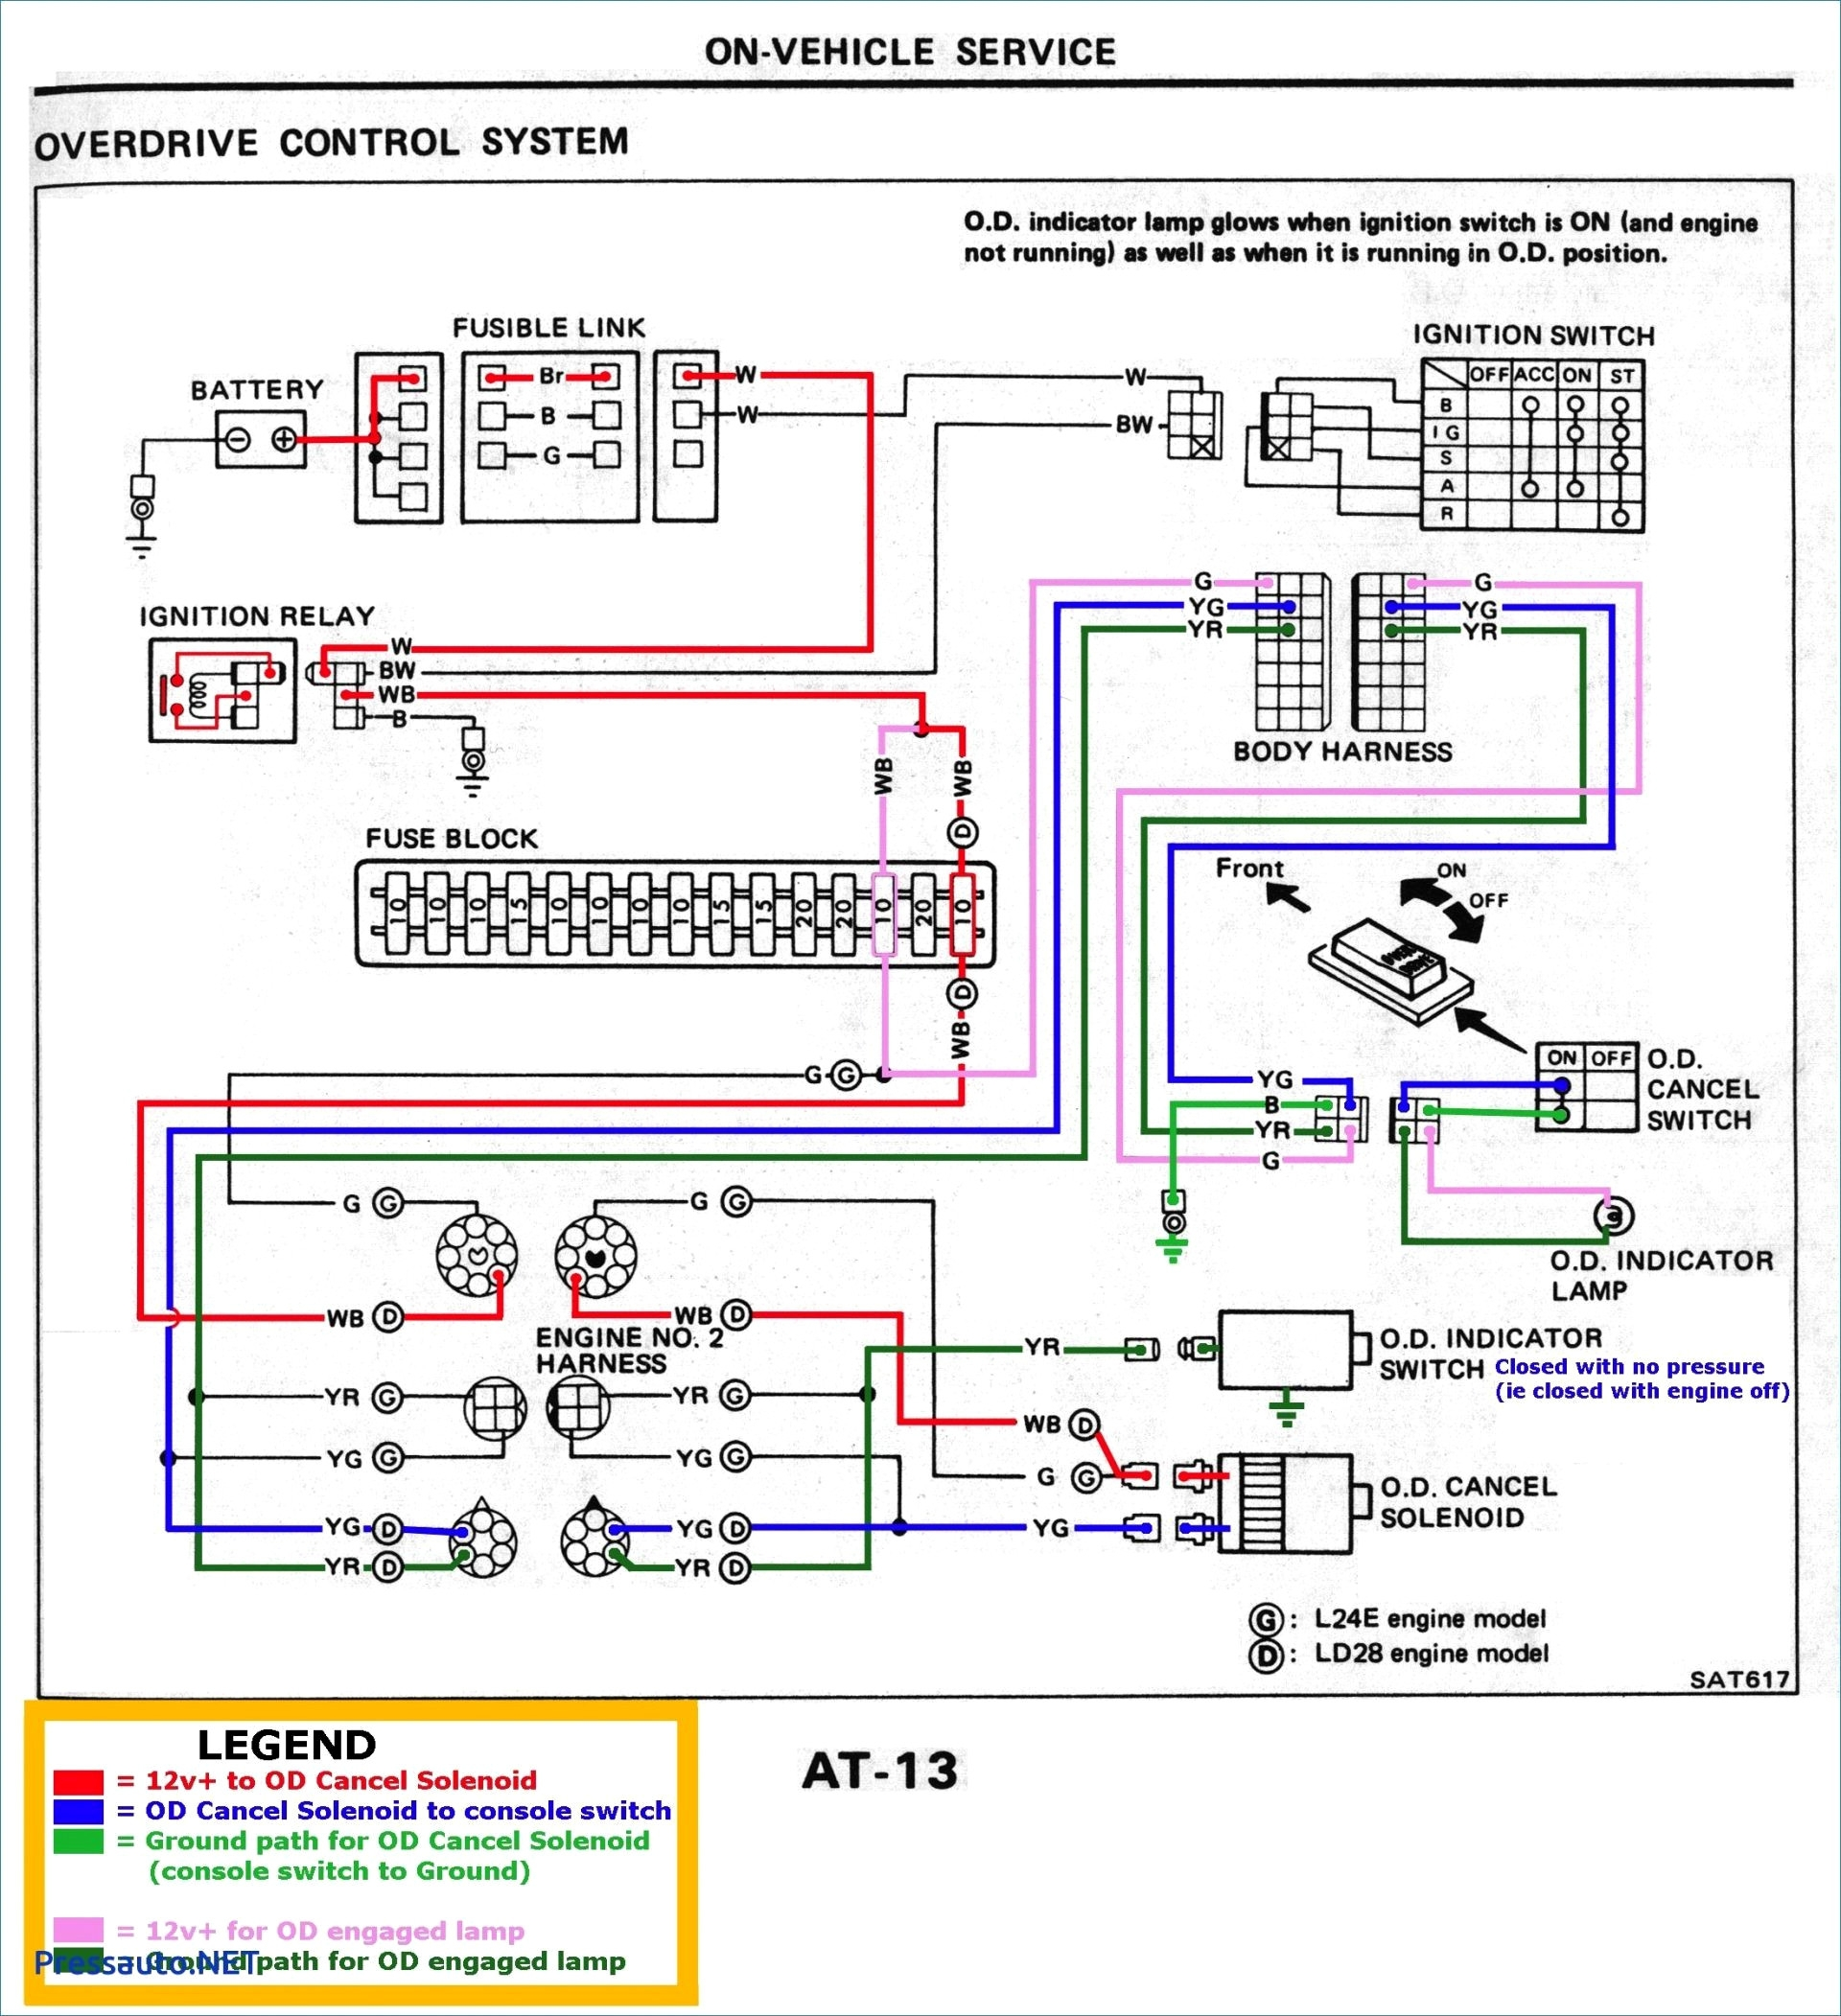 jl audio 500 1v2 wiring diagram Collection-Jl Audio 500 1v2 Wiring Diagram Chevy 7 Pin Trailer Wiring Diagram Wiring Diagram for 17-o